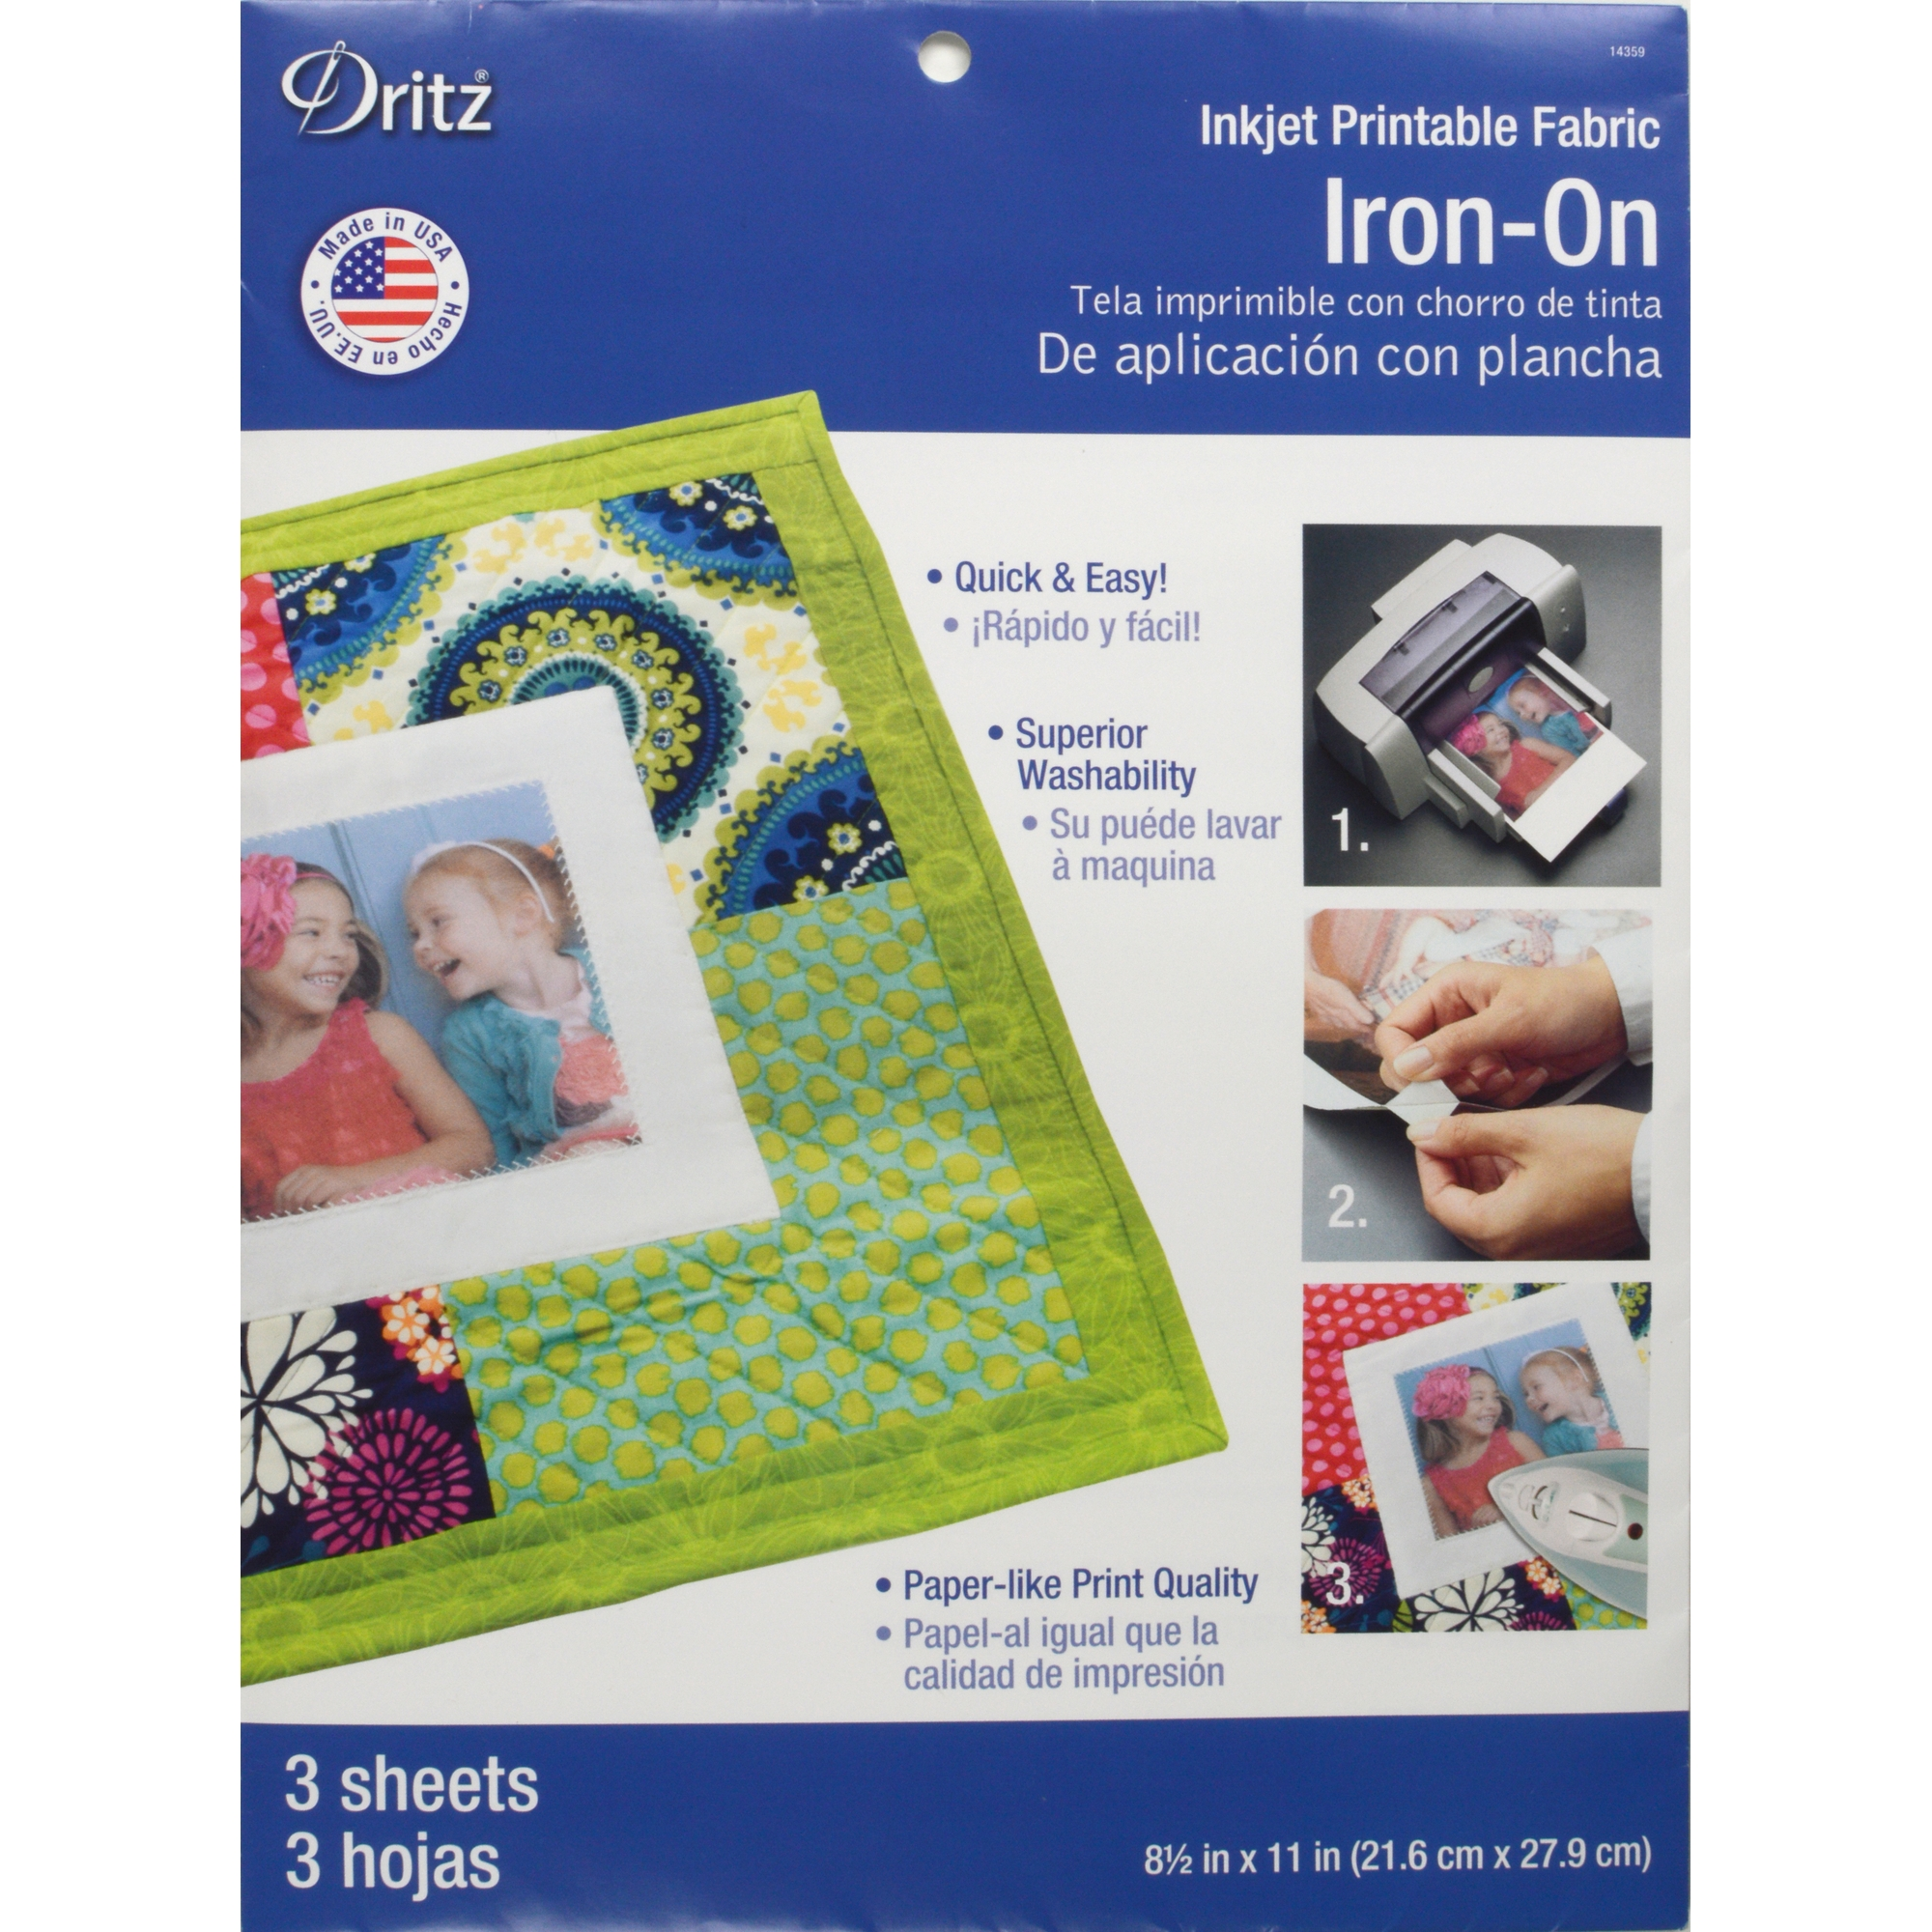 graphic about Ink Jet Printable Fabric named Dritz Inkjet Printable Cloth Iron-Upon Sheets, 3 Depend